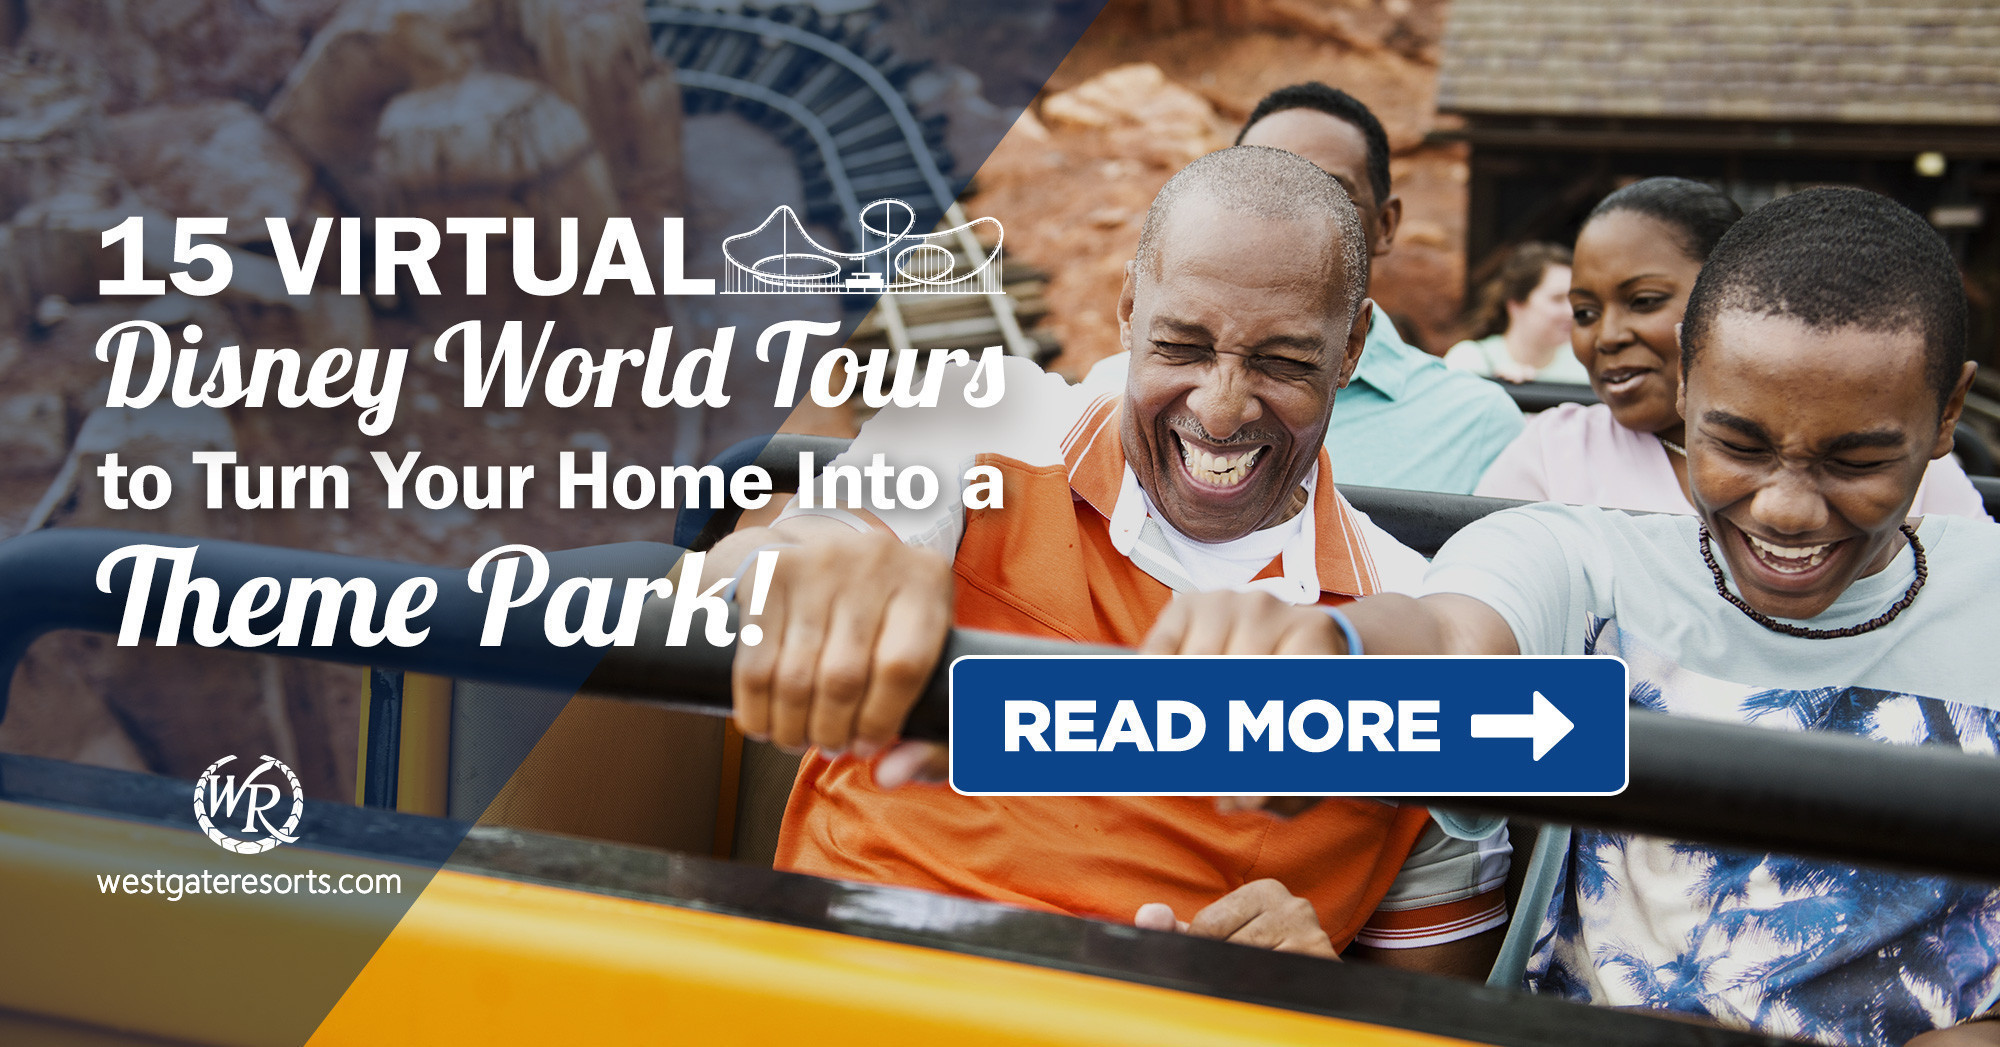 15 Virtual Disney World Tours to Turn Your Home Into a Theme Park | Westgate Travel Blog